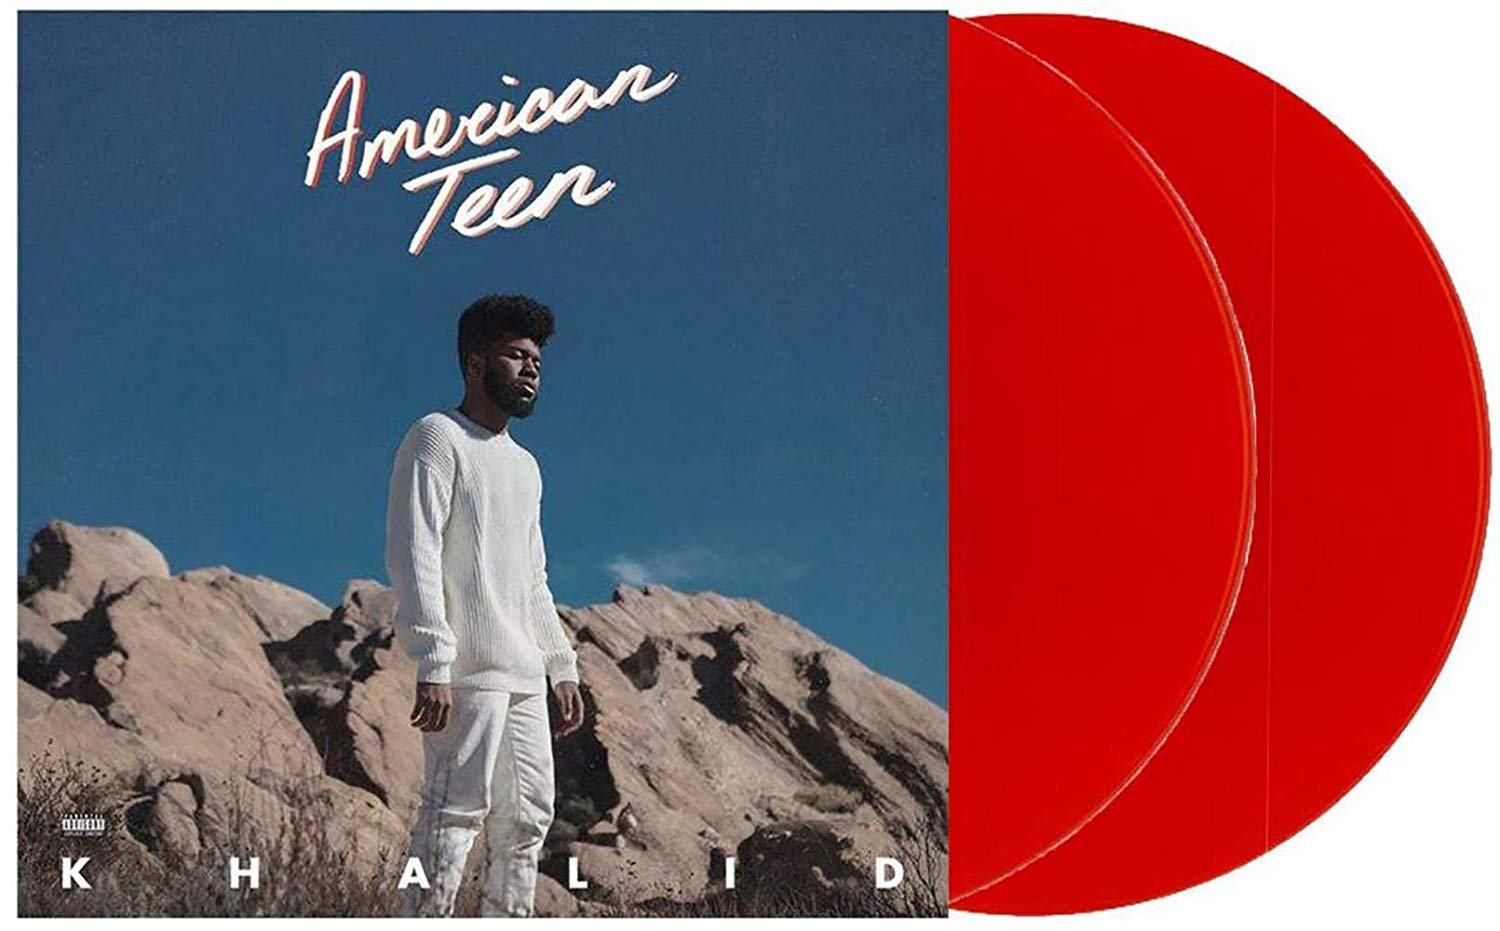 American Teen - Exclusive Limited Edition Translucent Red 2XLP Vinyl (#/15000 [VG+/NM- CONDITION] by RCA.